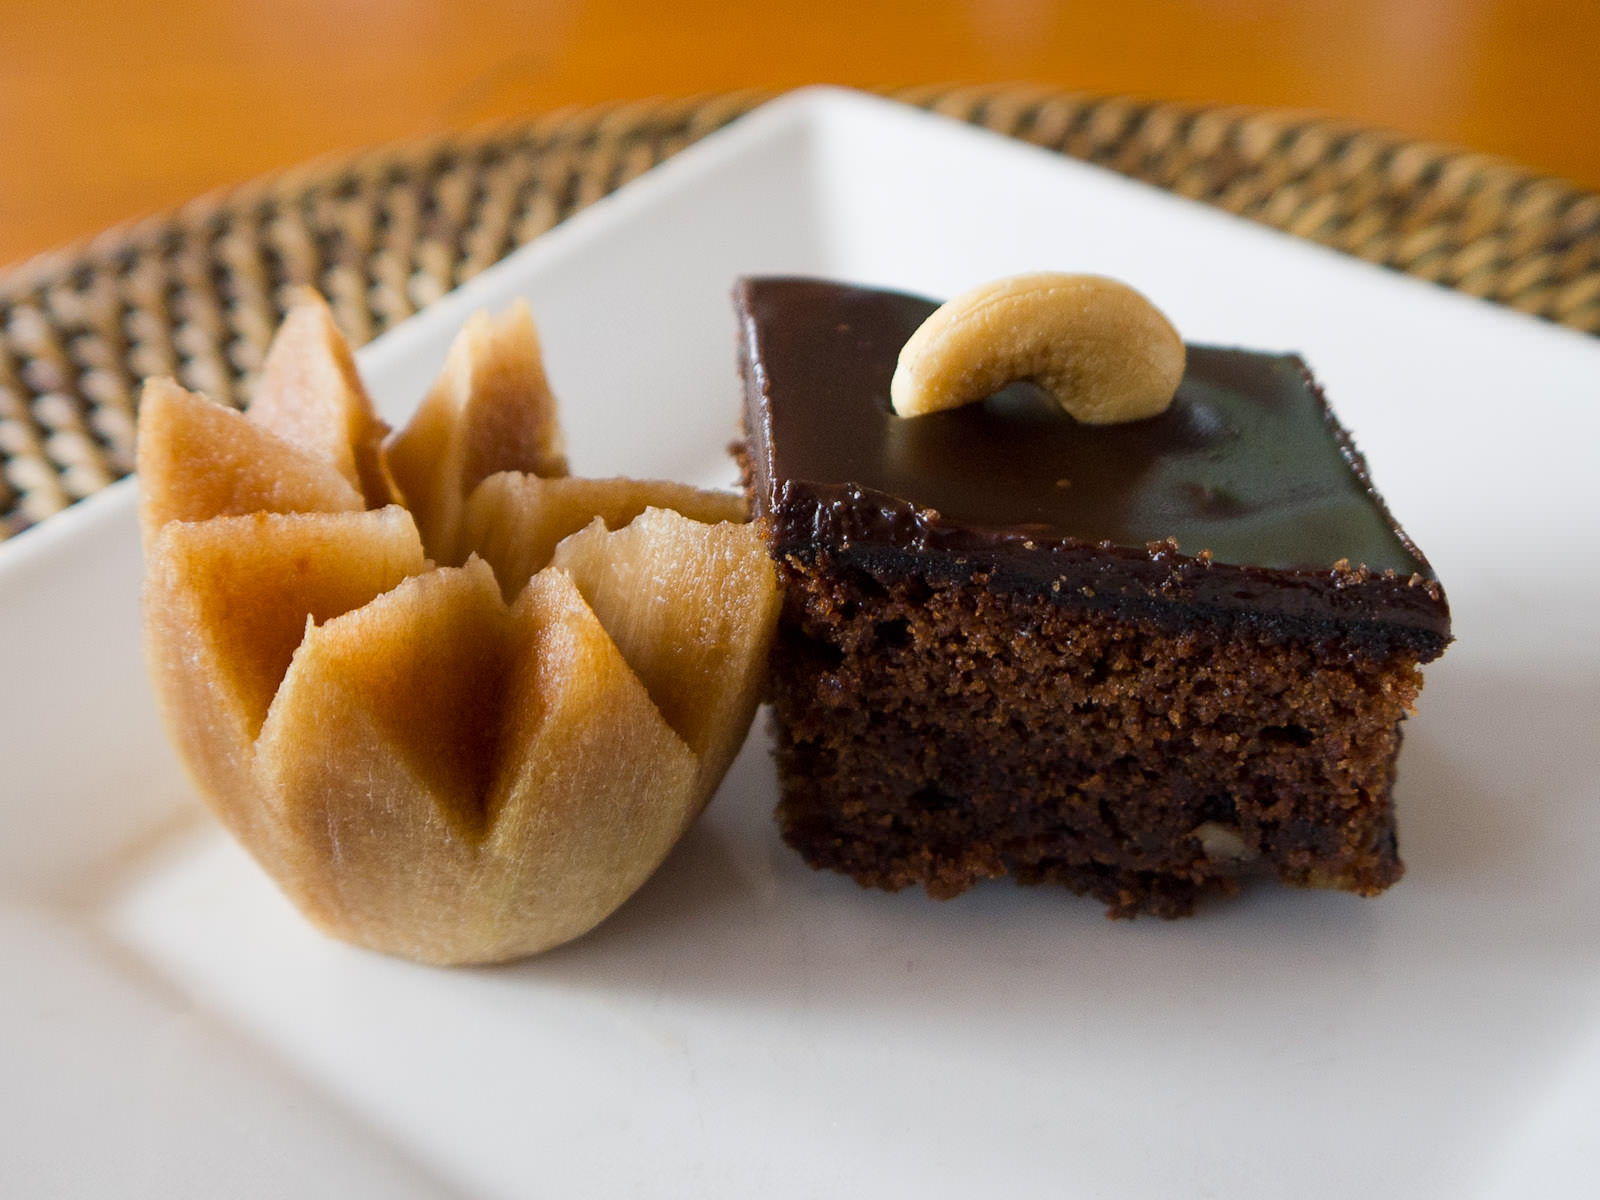 Sapodilla and brownie